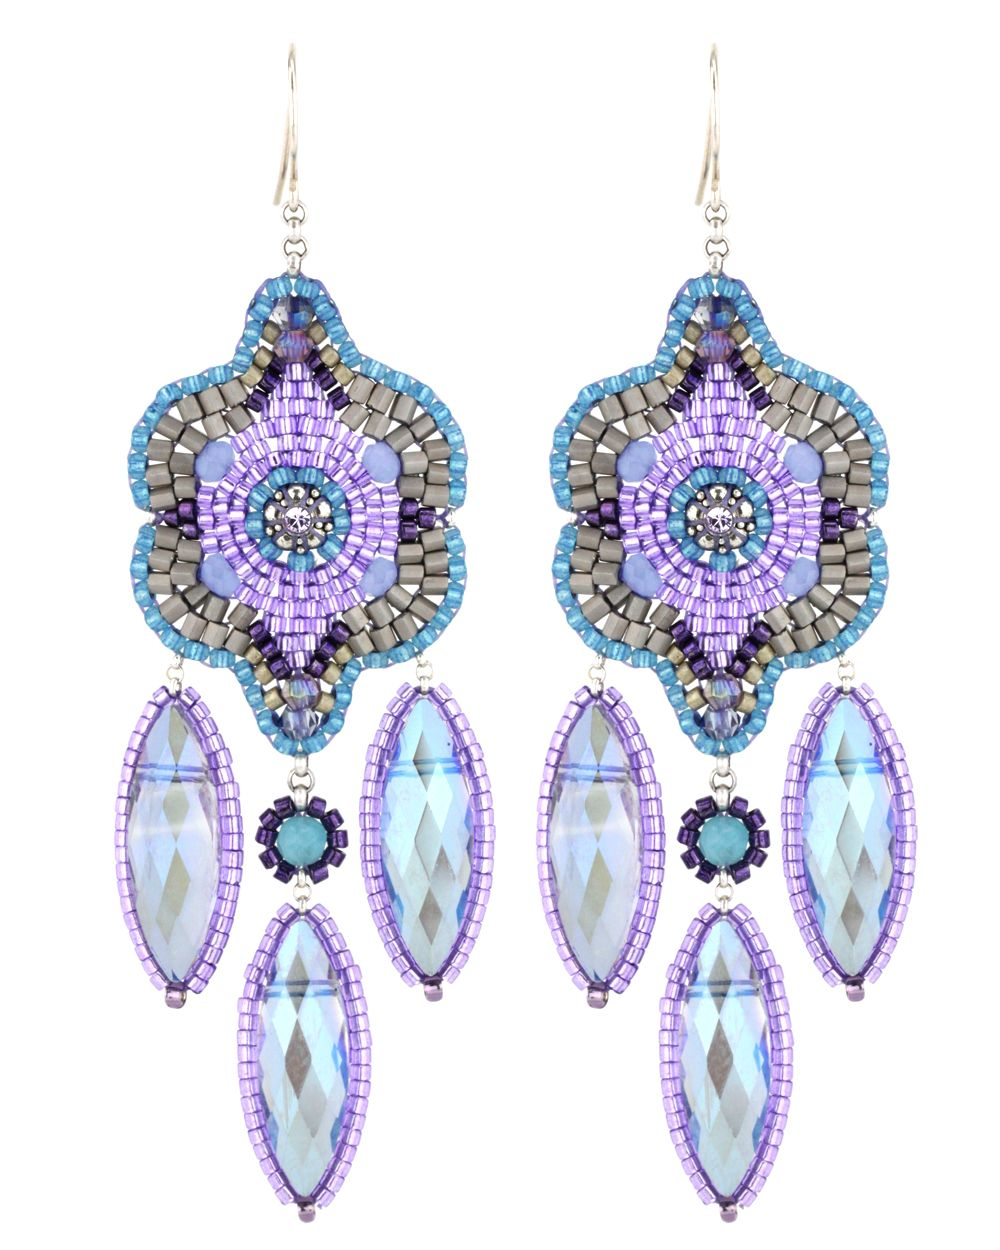 miguel ases jewelry | Miguel Ases Blue and Rainbow Quartz and Swarovski Earrings $288